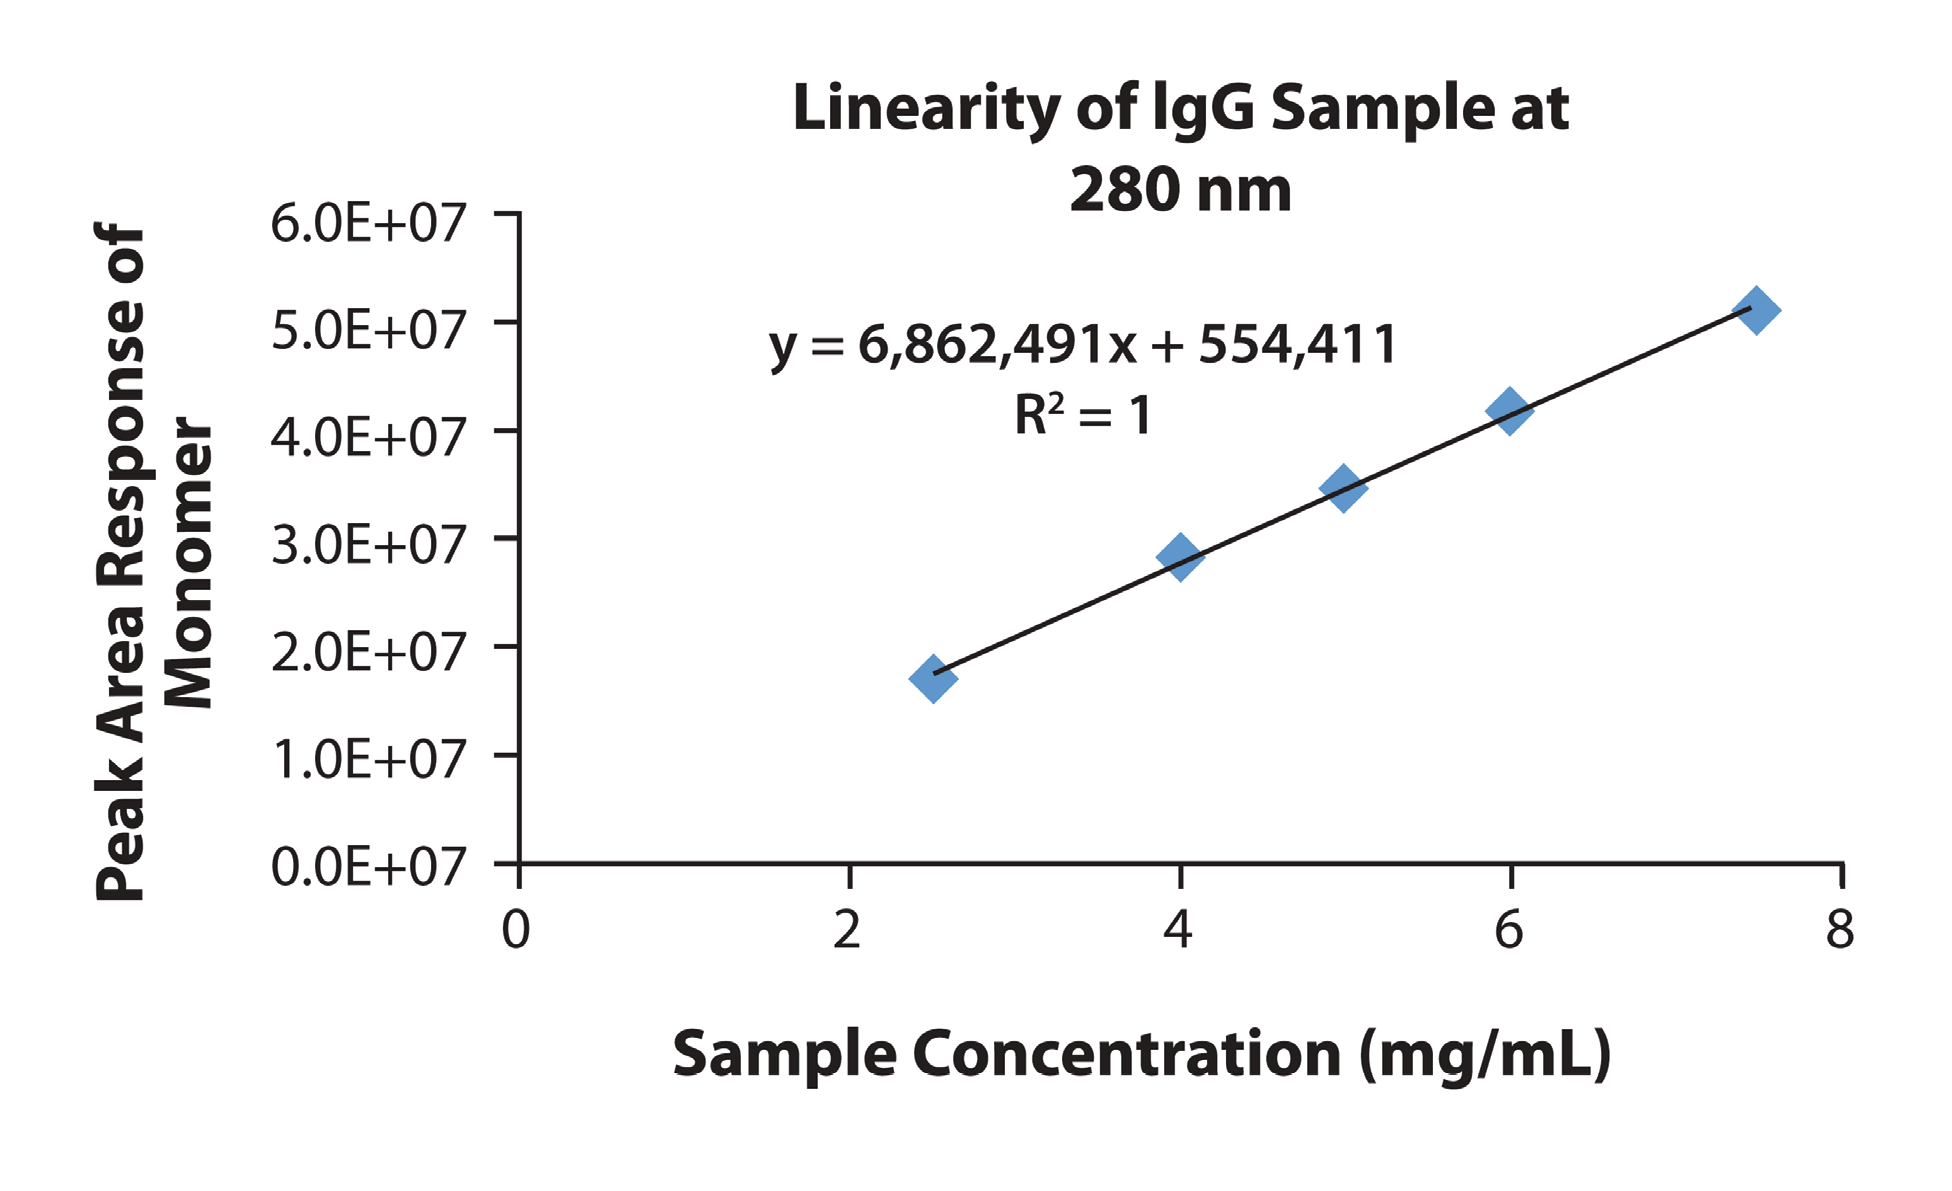 Figure 4. Linearity for Peak Area Responses of the IgG monomer (at both 280 nm and 214 nm) as well as Dimer, Aggregate, and Fragments at 214 nm Observed in IgG Sample Preparations